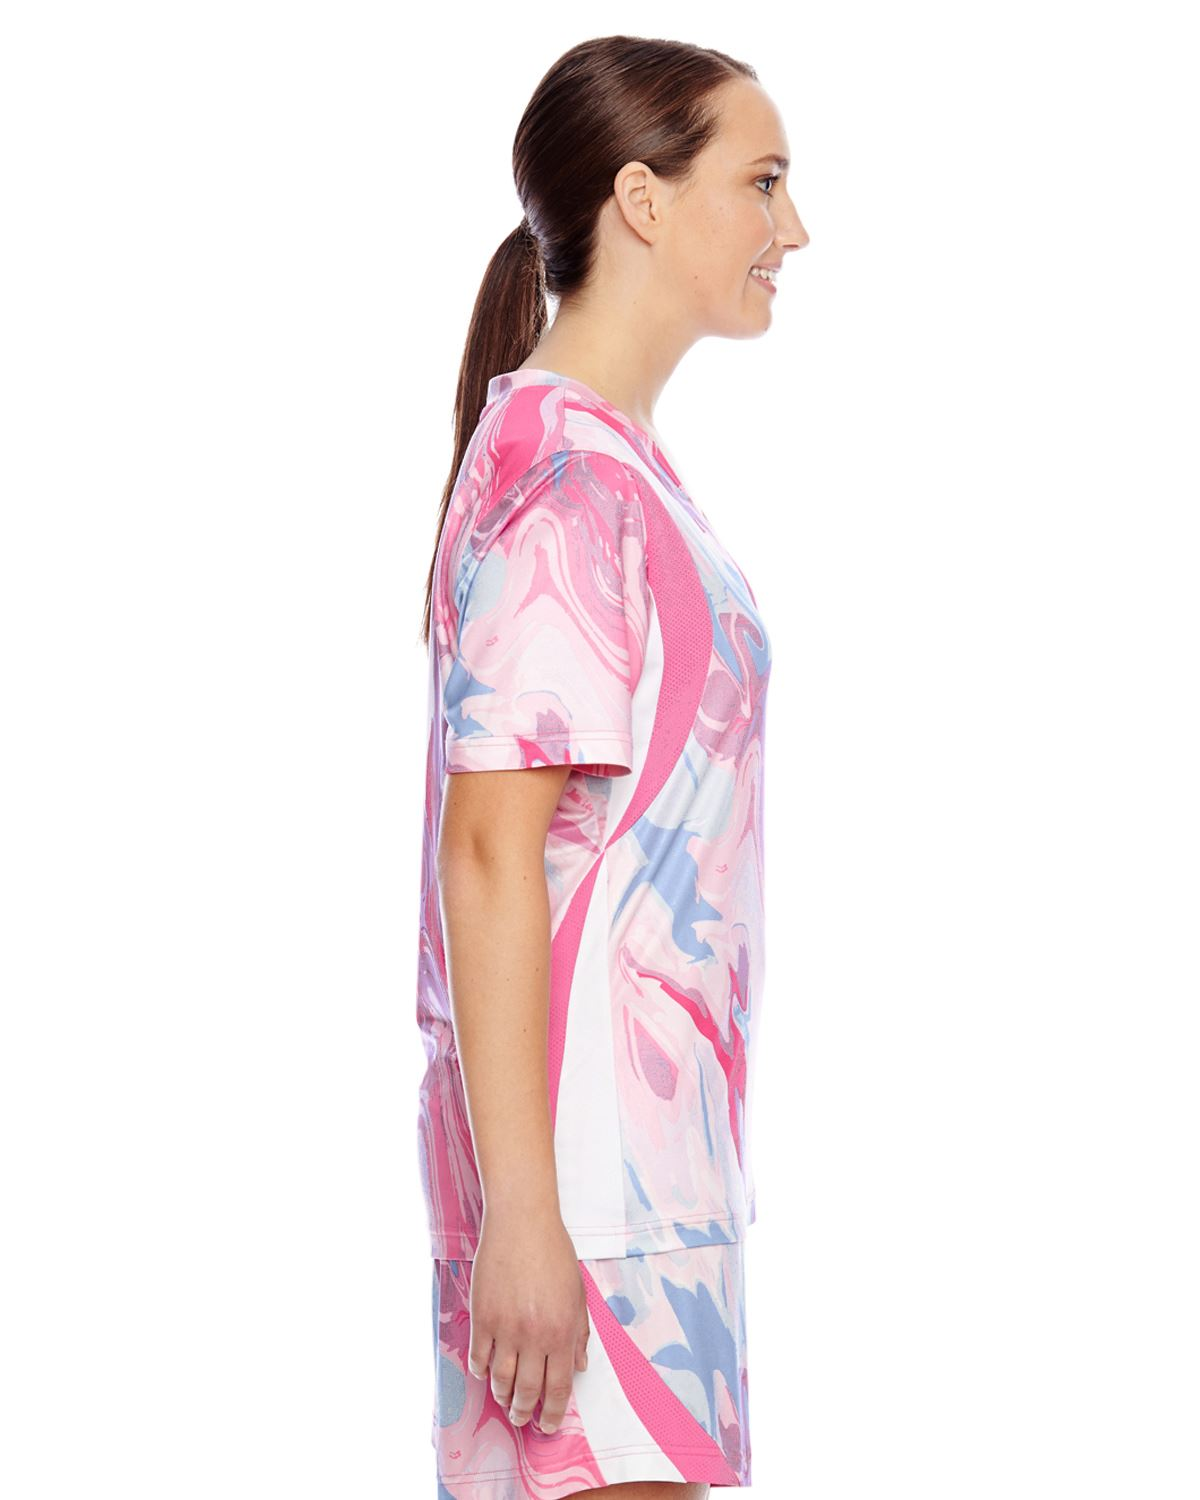 Team 365 Ladies V-Neck Sublimated Pink Swirl Jersey